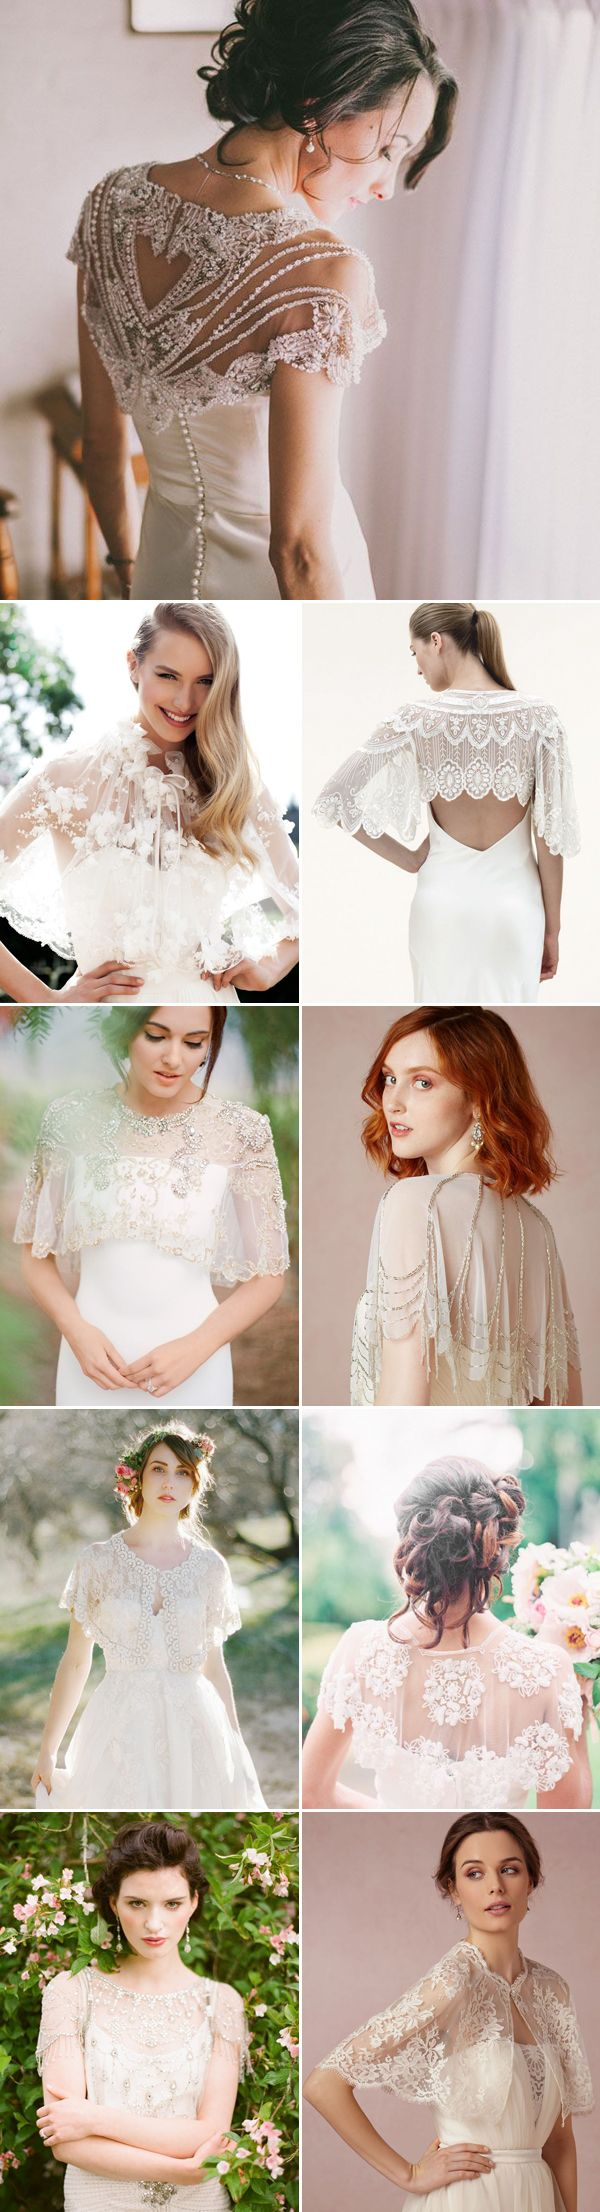 Fall Wedding Fashion Trend – 22 Chic Bridal Cover-Ups!